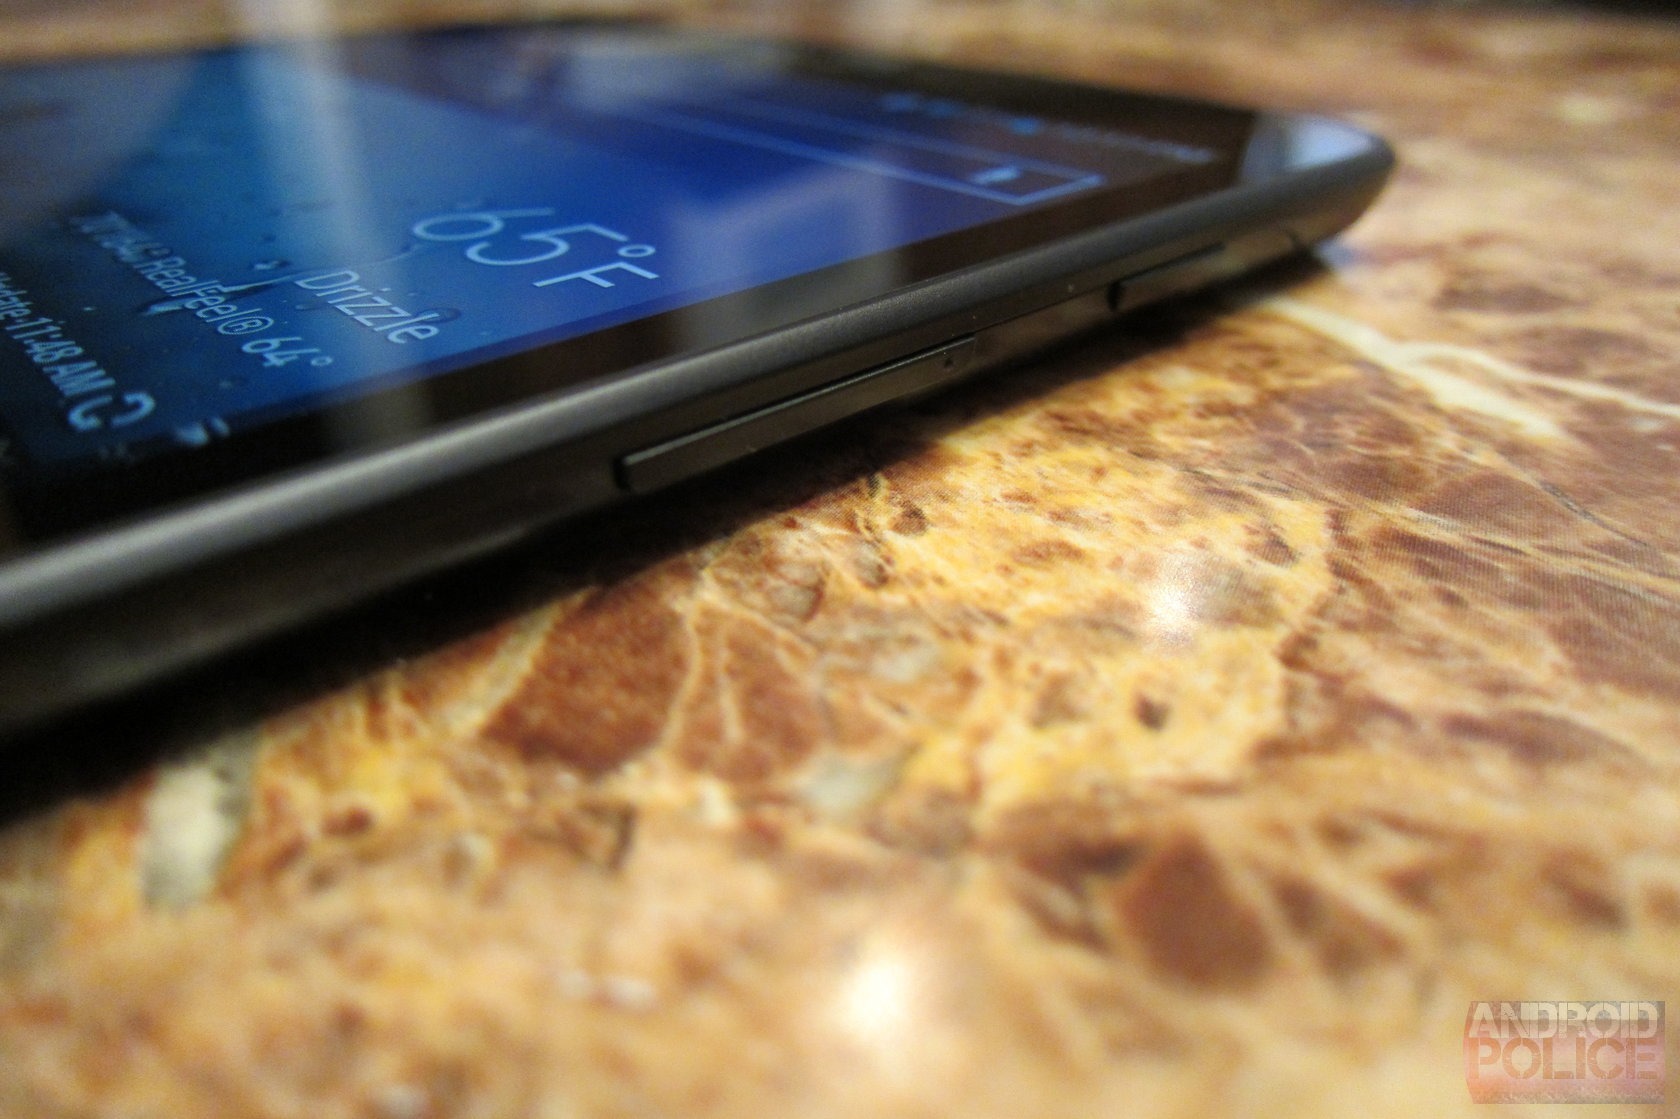 LG G Pad 8 3 Review: A Potentially Good Device That Gets